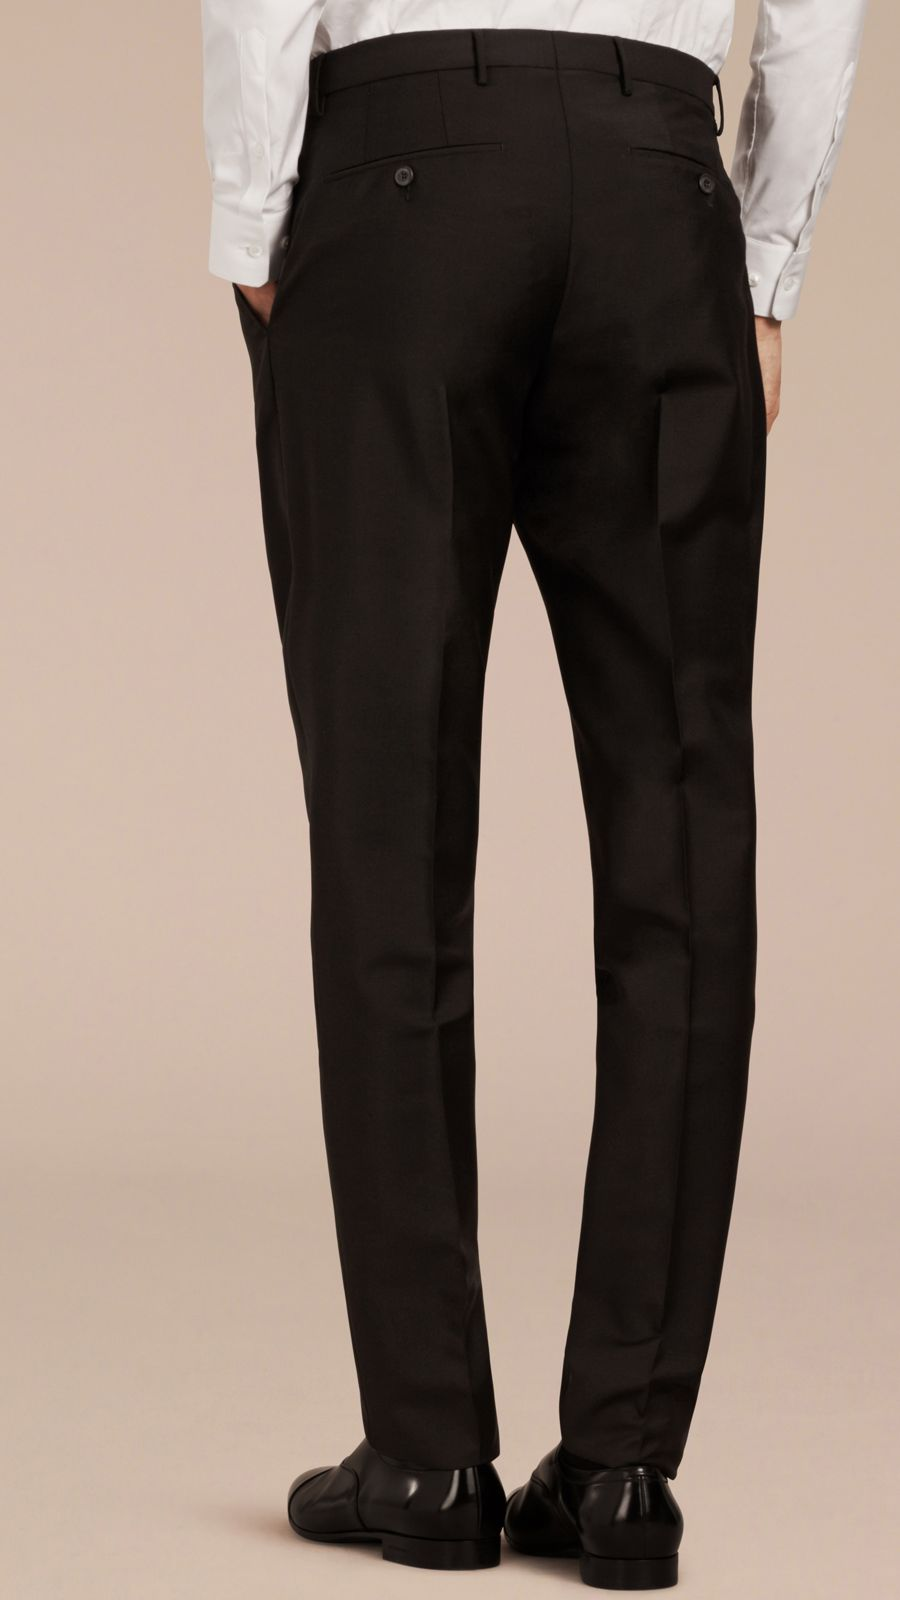 Black Modern Fit Wool Mohair Trousers Black - Image 4